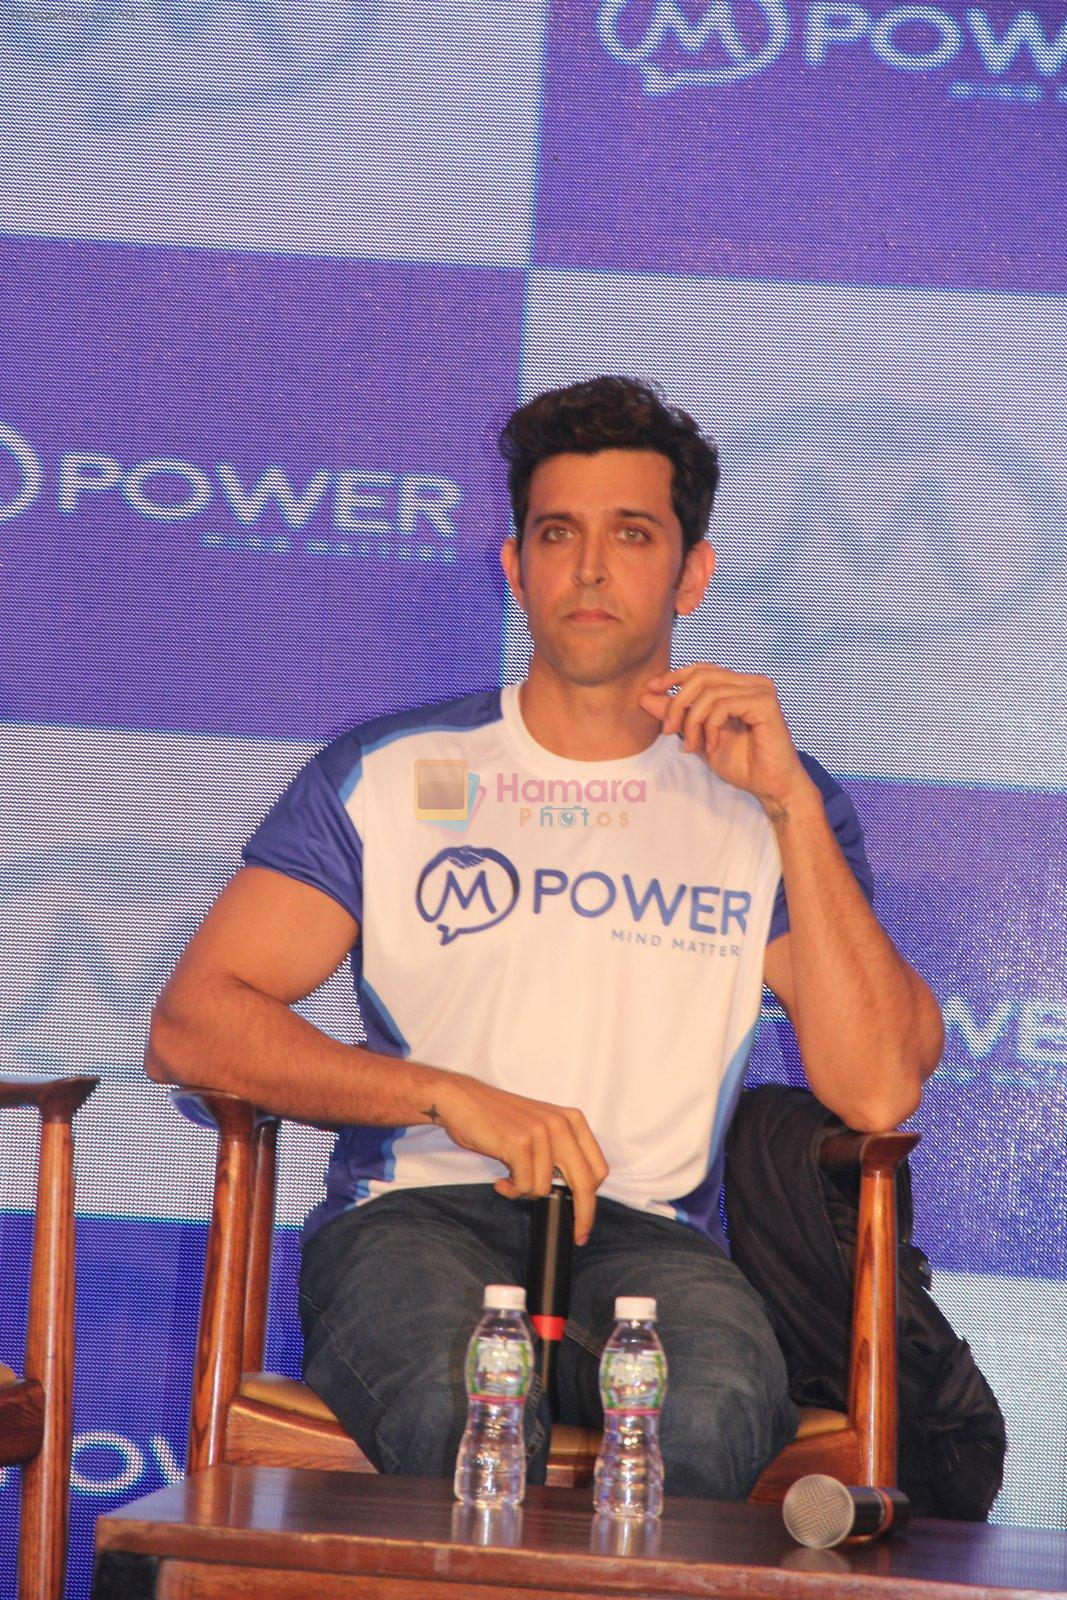 Hrithik Roshan at Mpower launch on 17th Oct 2016